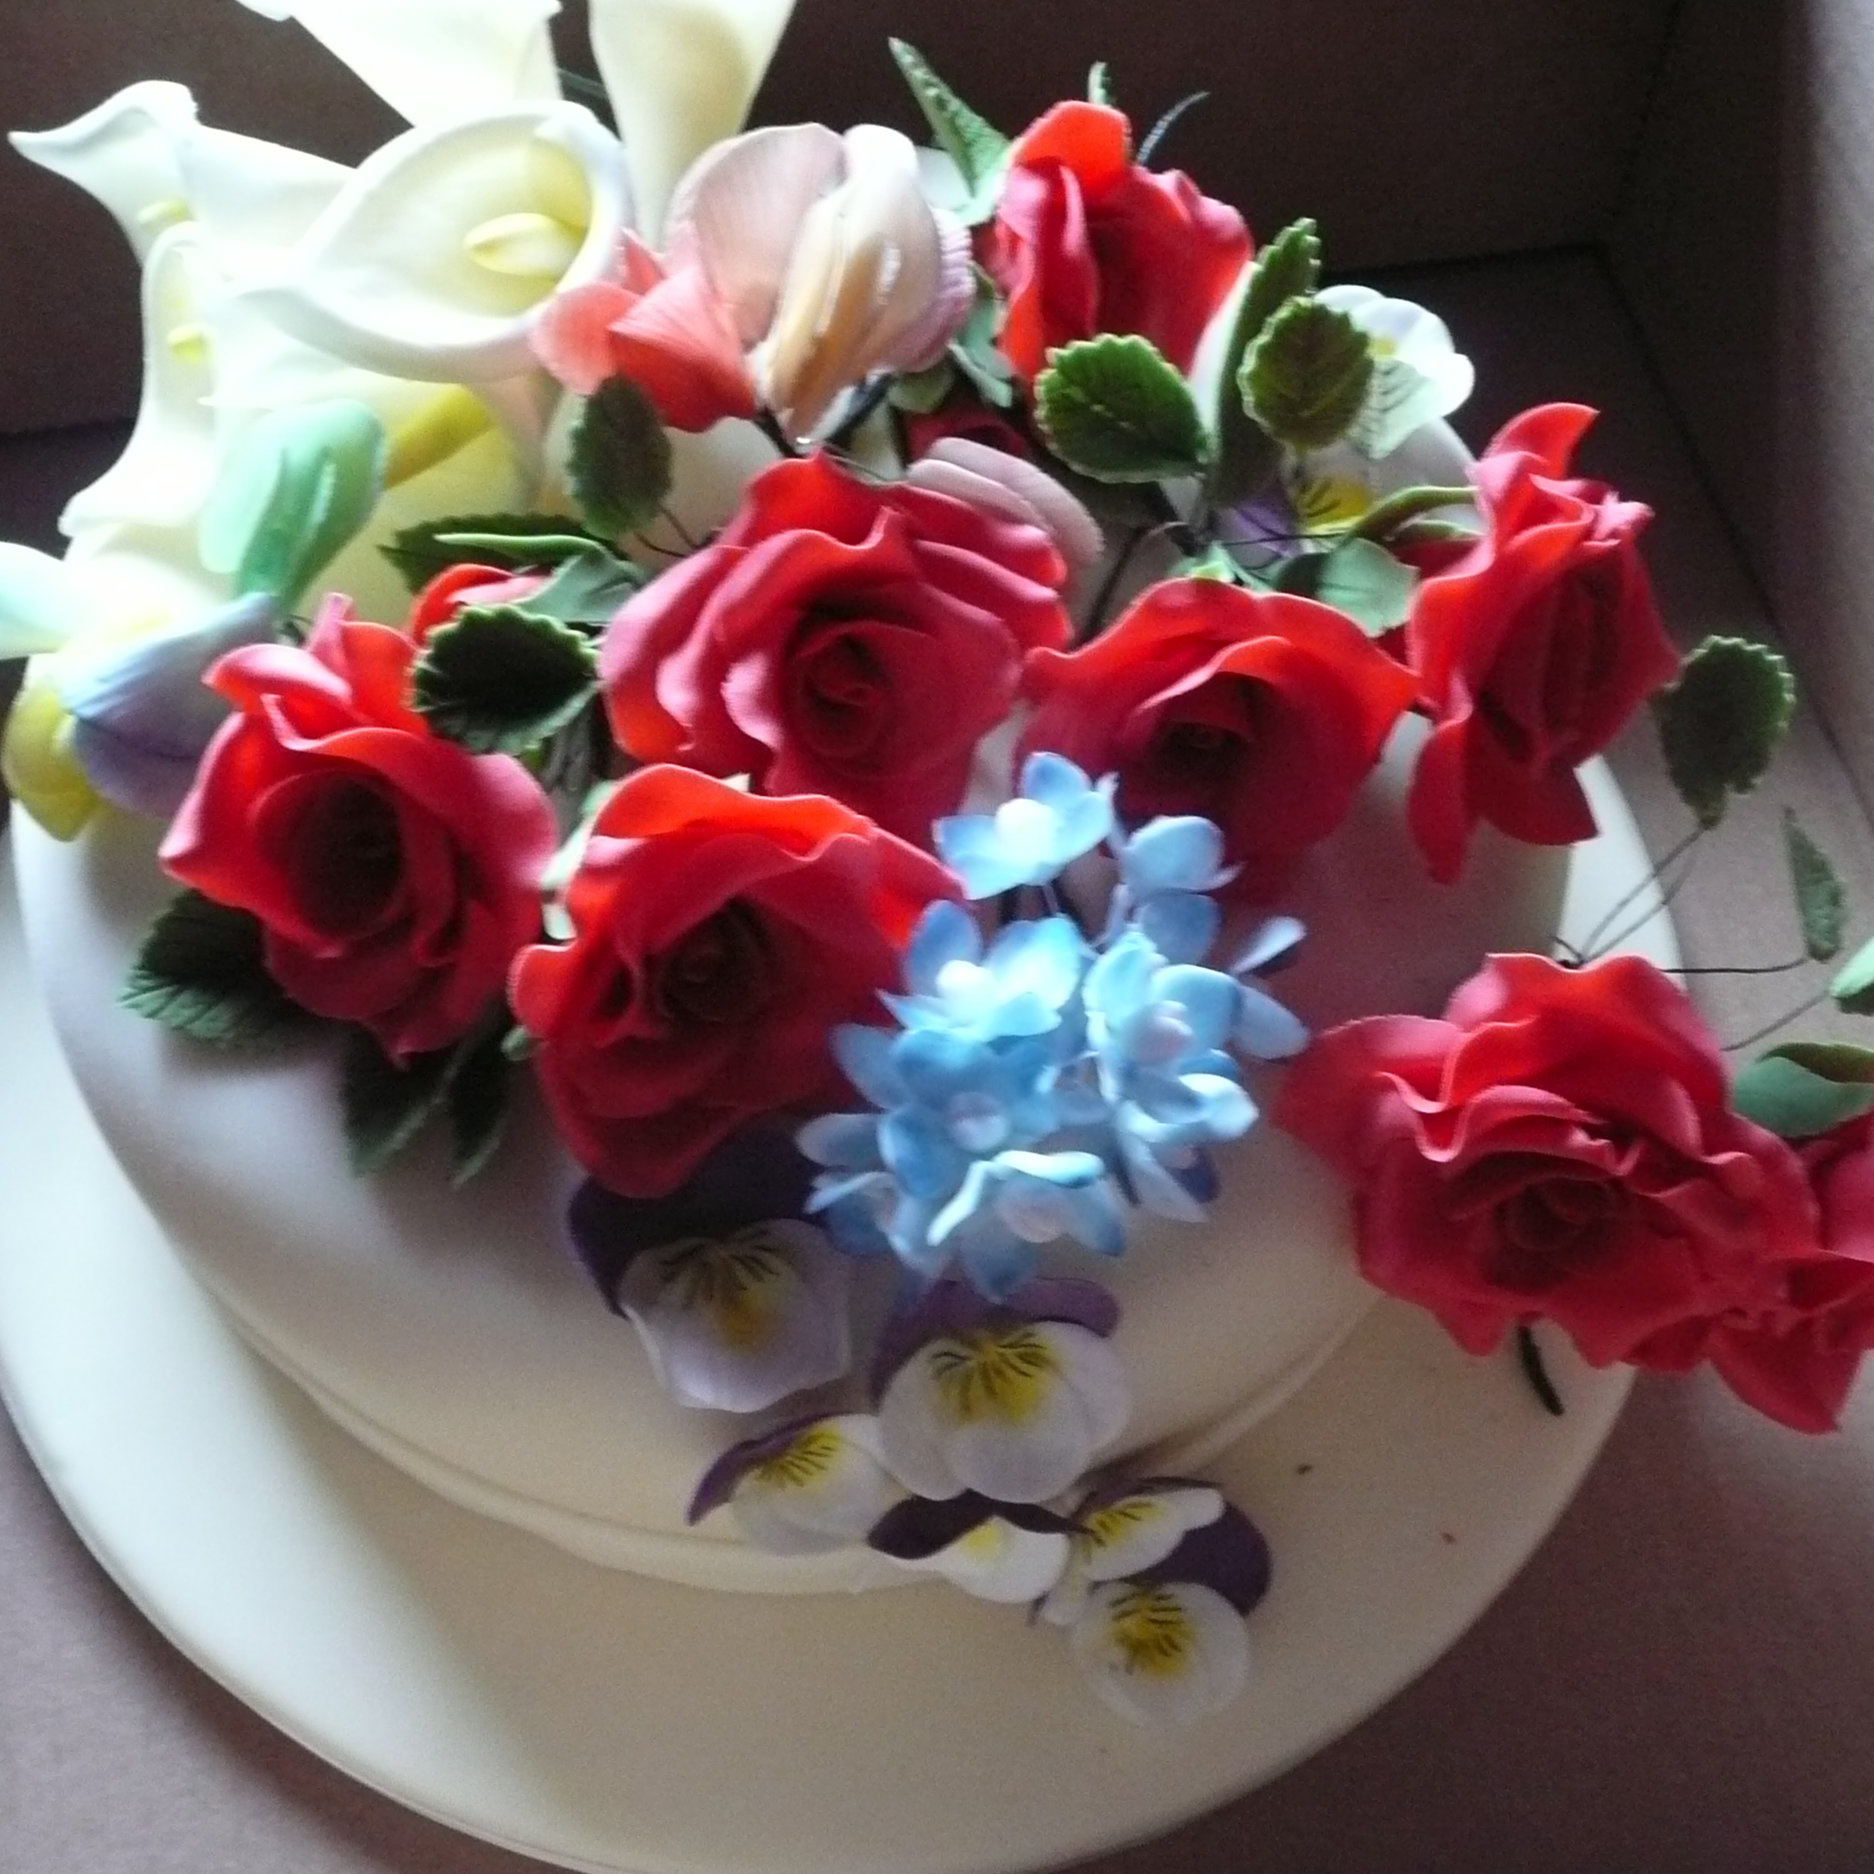 March 2015:  Christine demonstrated how to make flowers out of sugar paste and showed us some of her exquisite work. We then had a go at making a simple pansy.